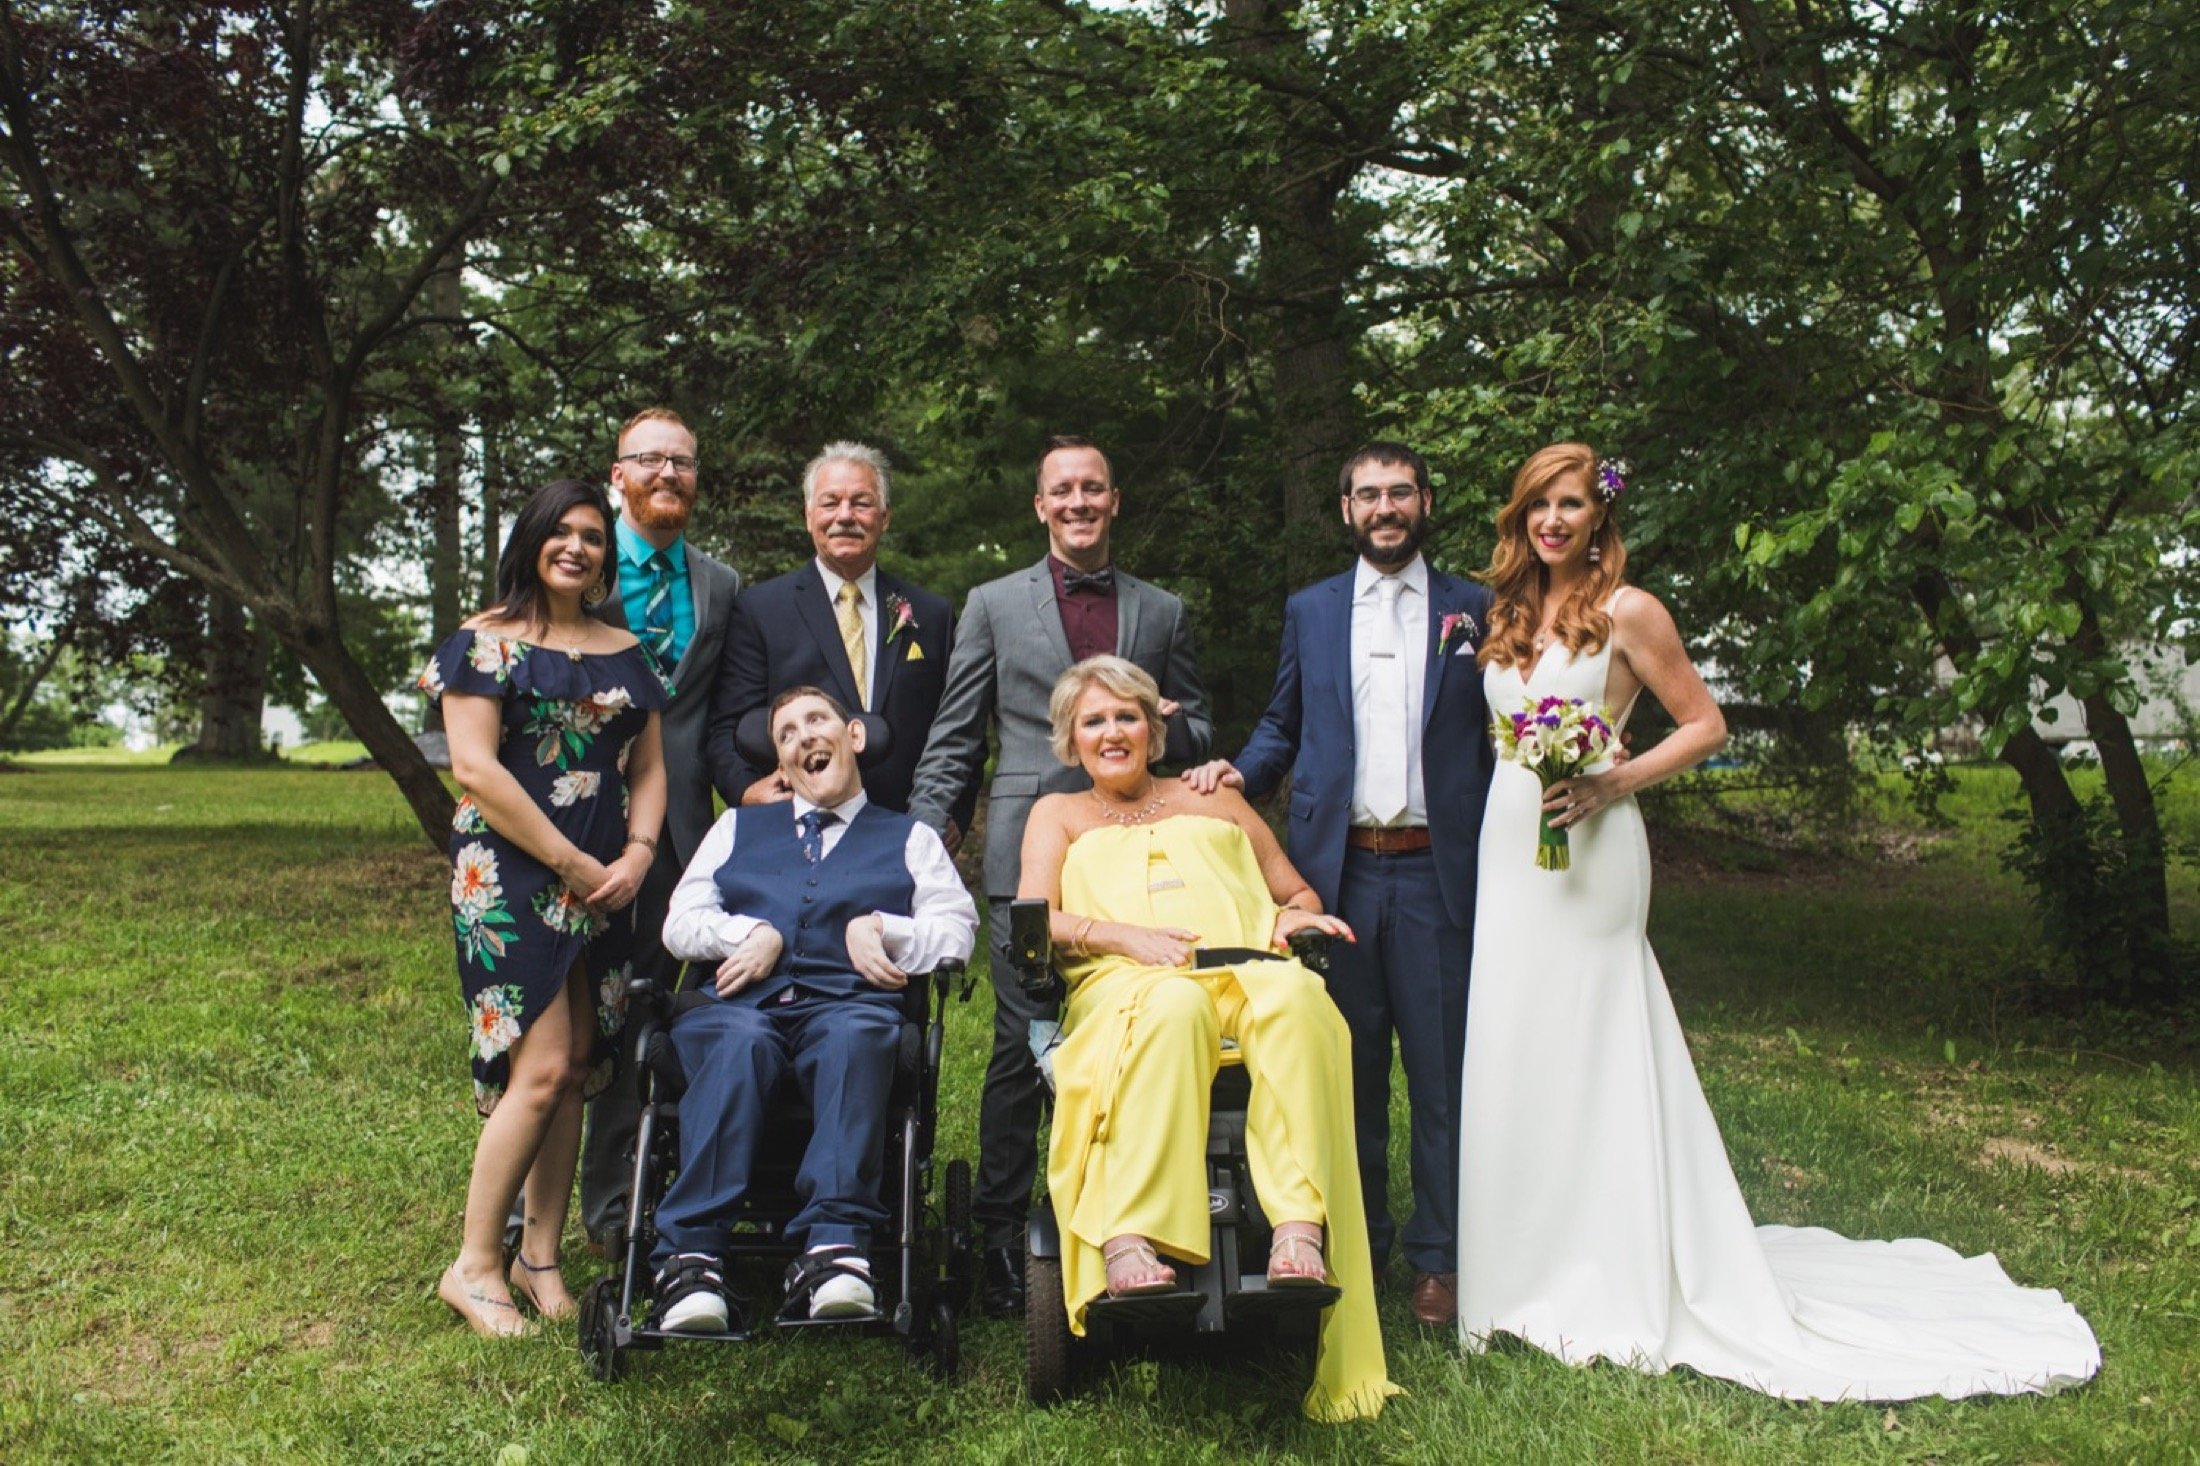 family, grieving, wedding planning, loss